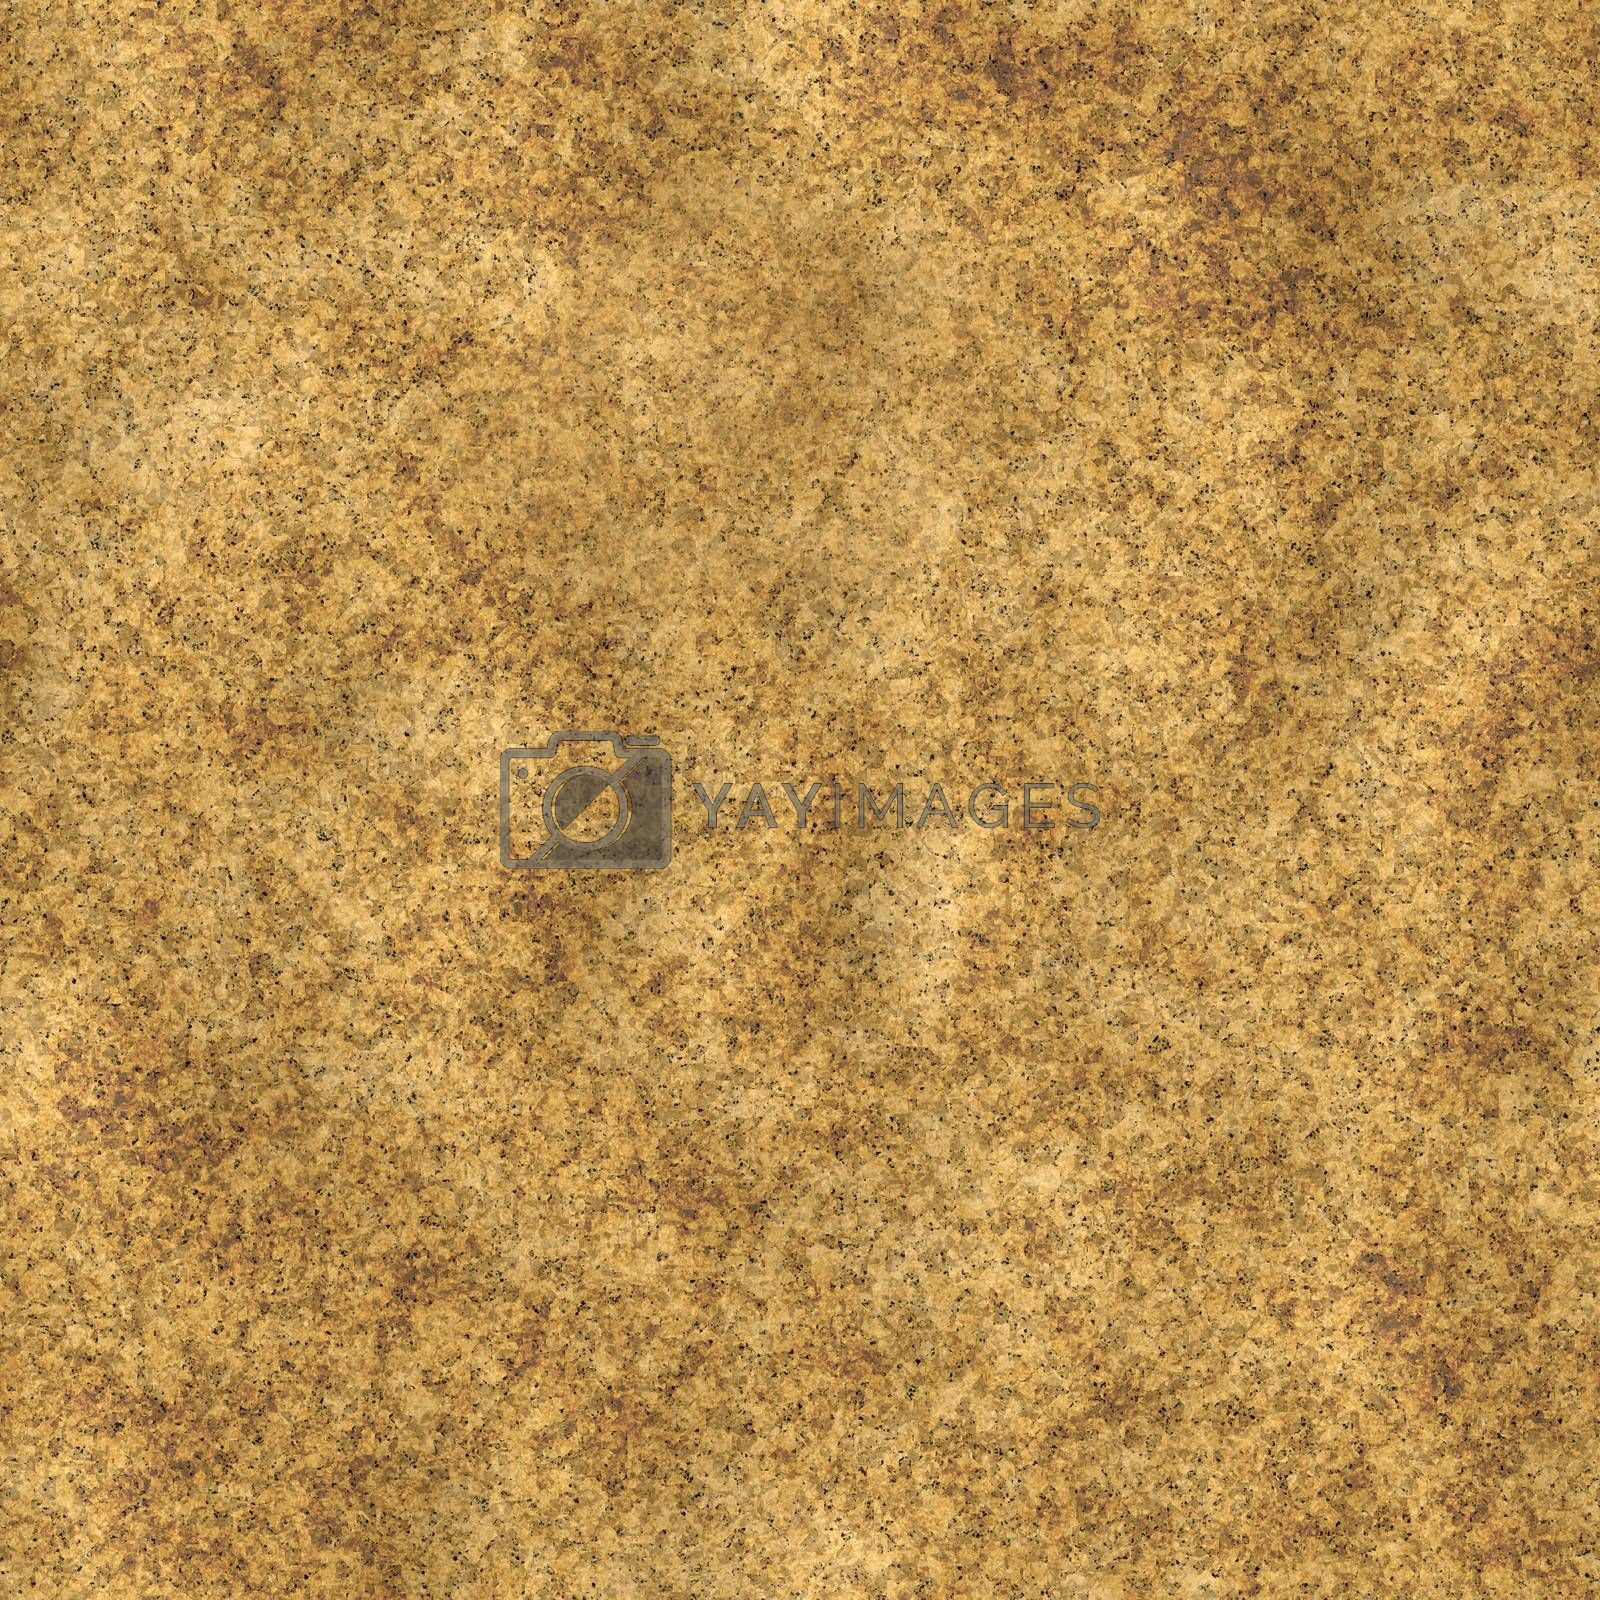 Seamless cork board bulletin board texture ready for push pins and notes.